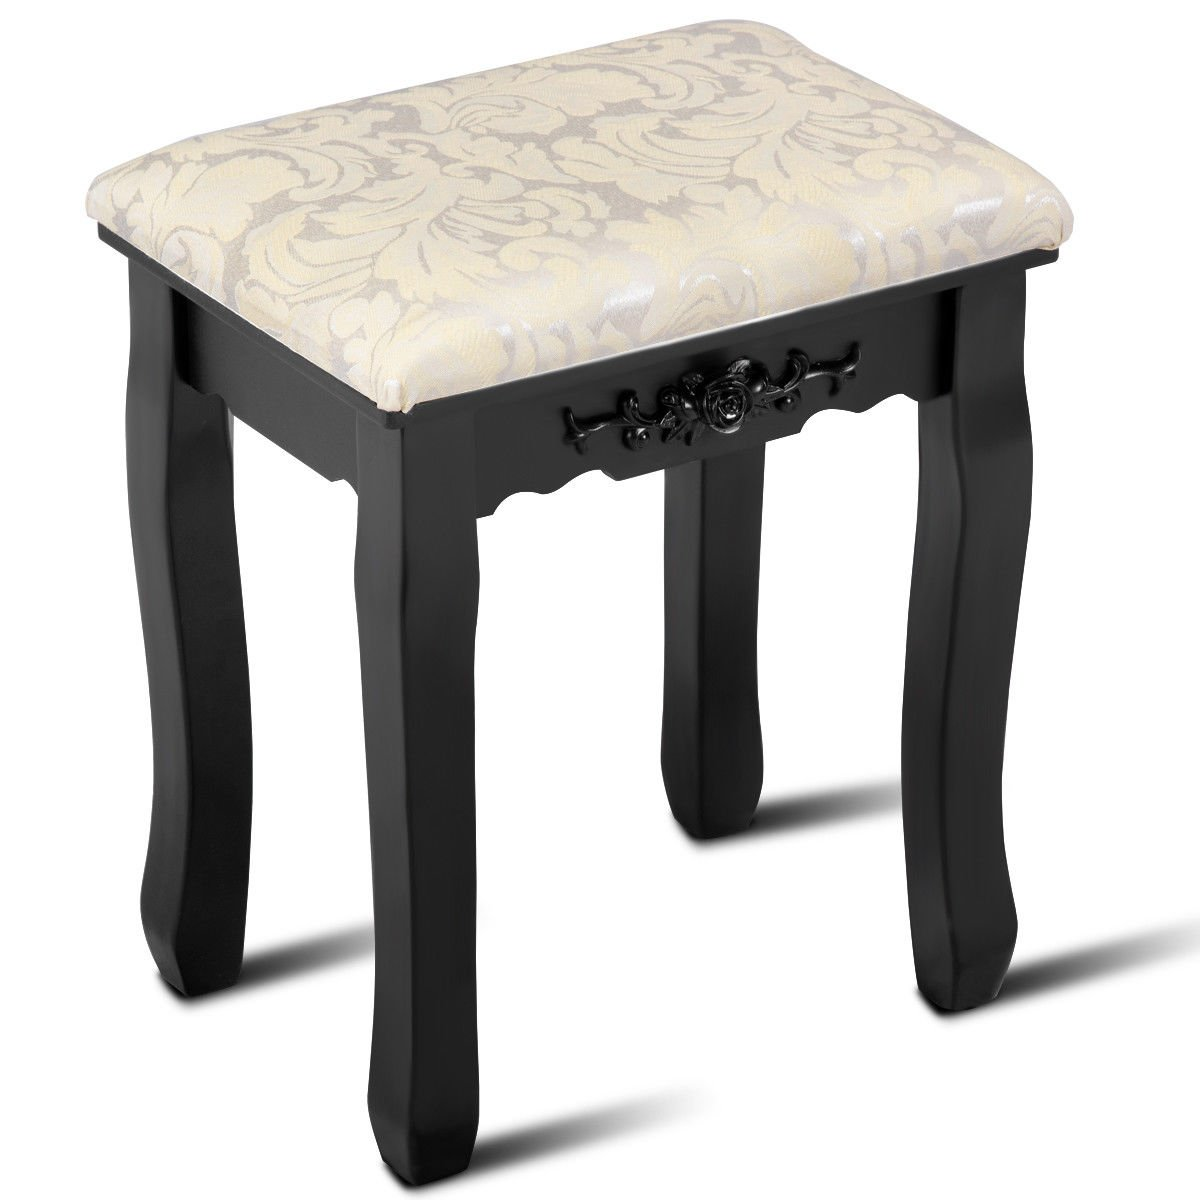 ubesgoo vanity stool makeup bench dressing stools for wood legs,padded cushioned chair piano